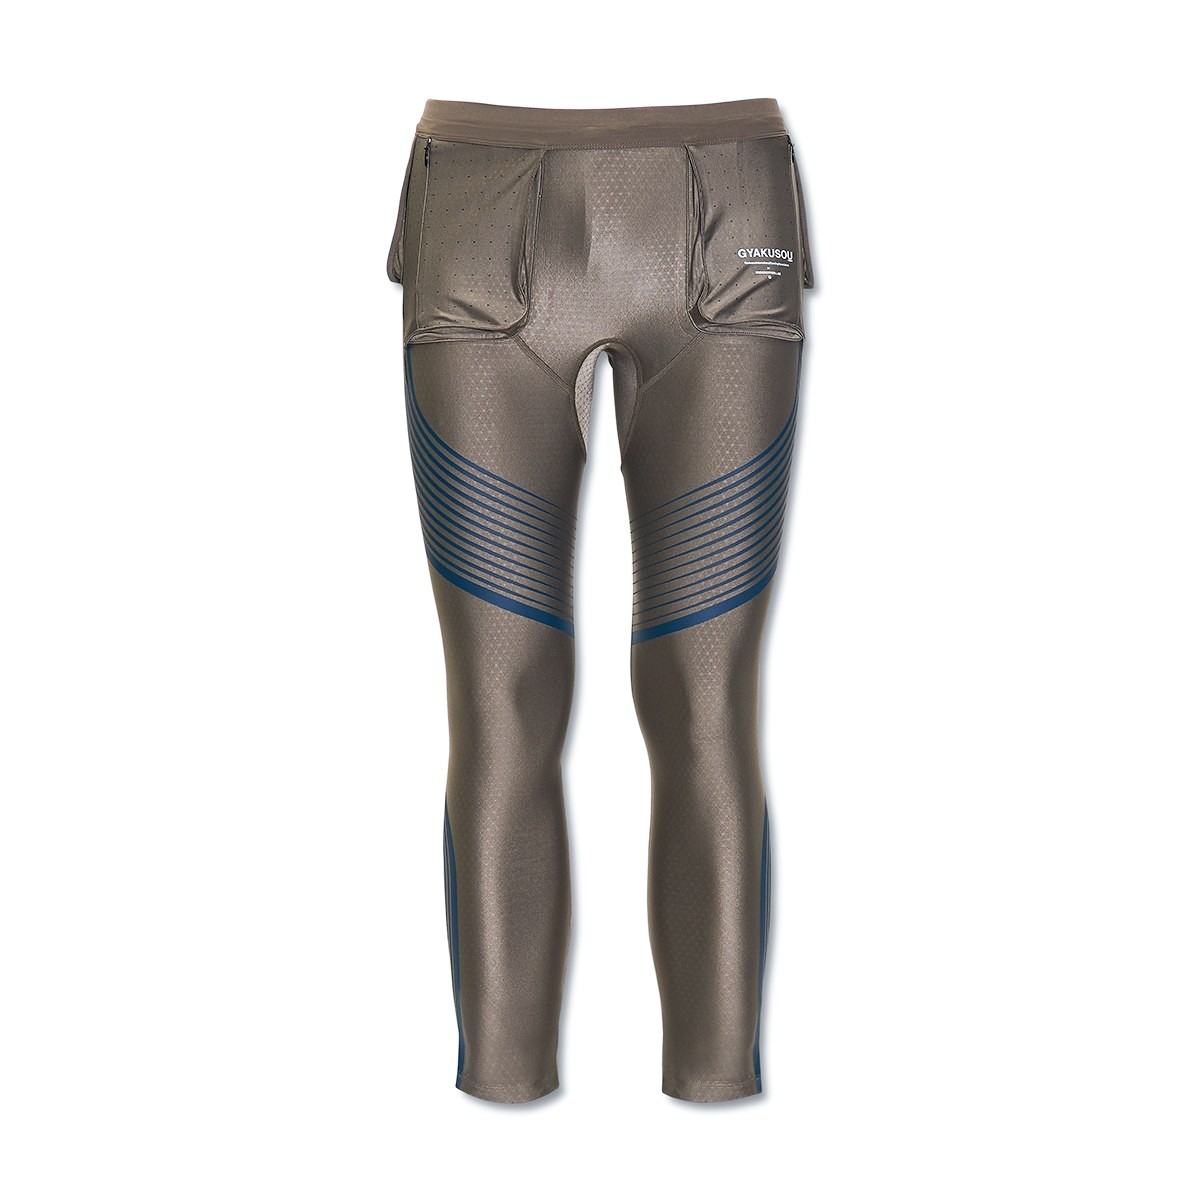 Dri-fit Utility Tights Nike Outlet Enjoy Pay With Paypal Cheap Online Sale Fake S6gW6s5